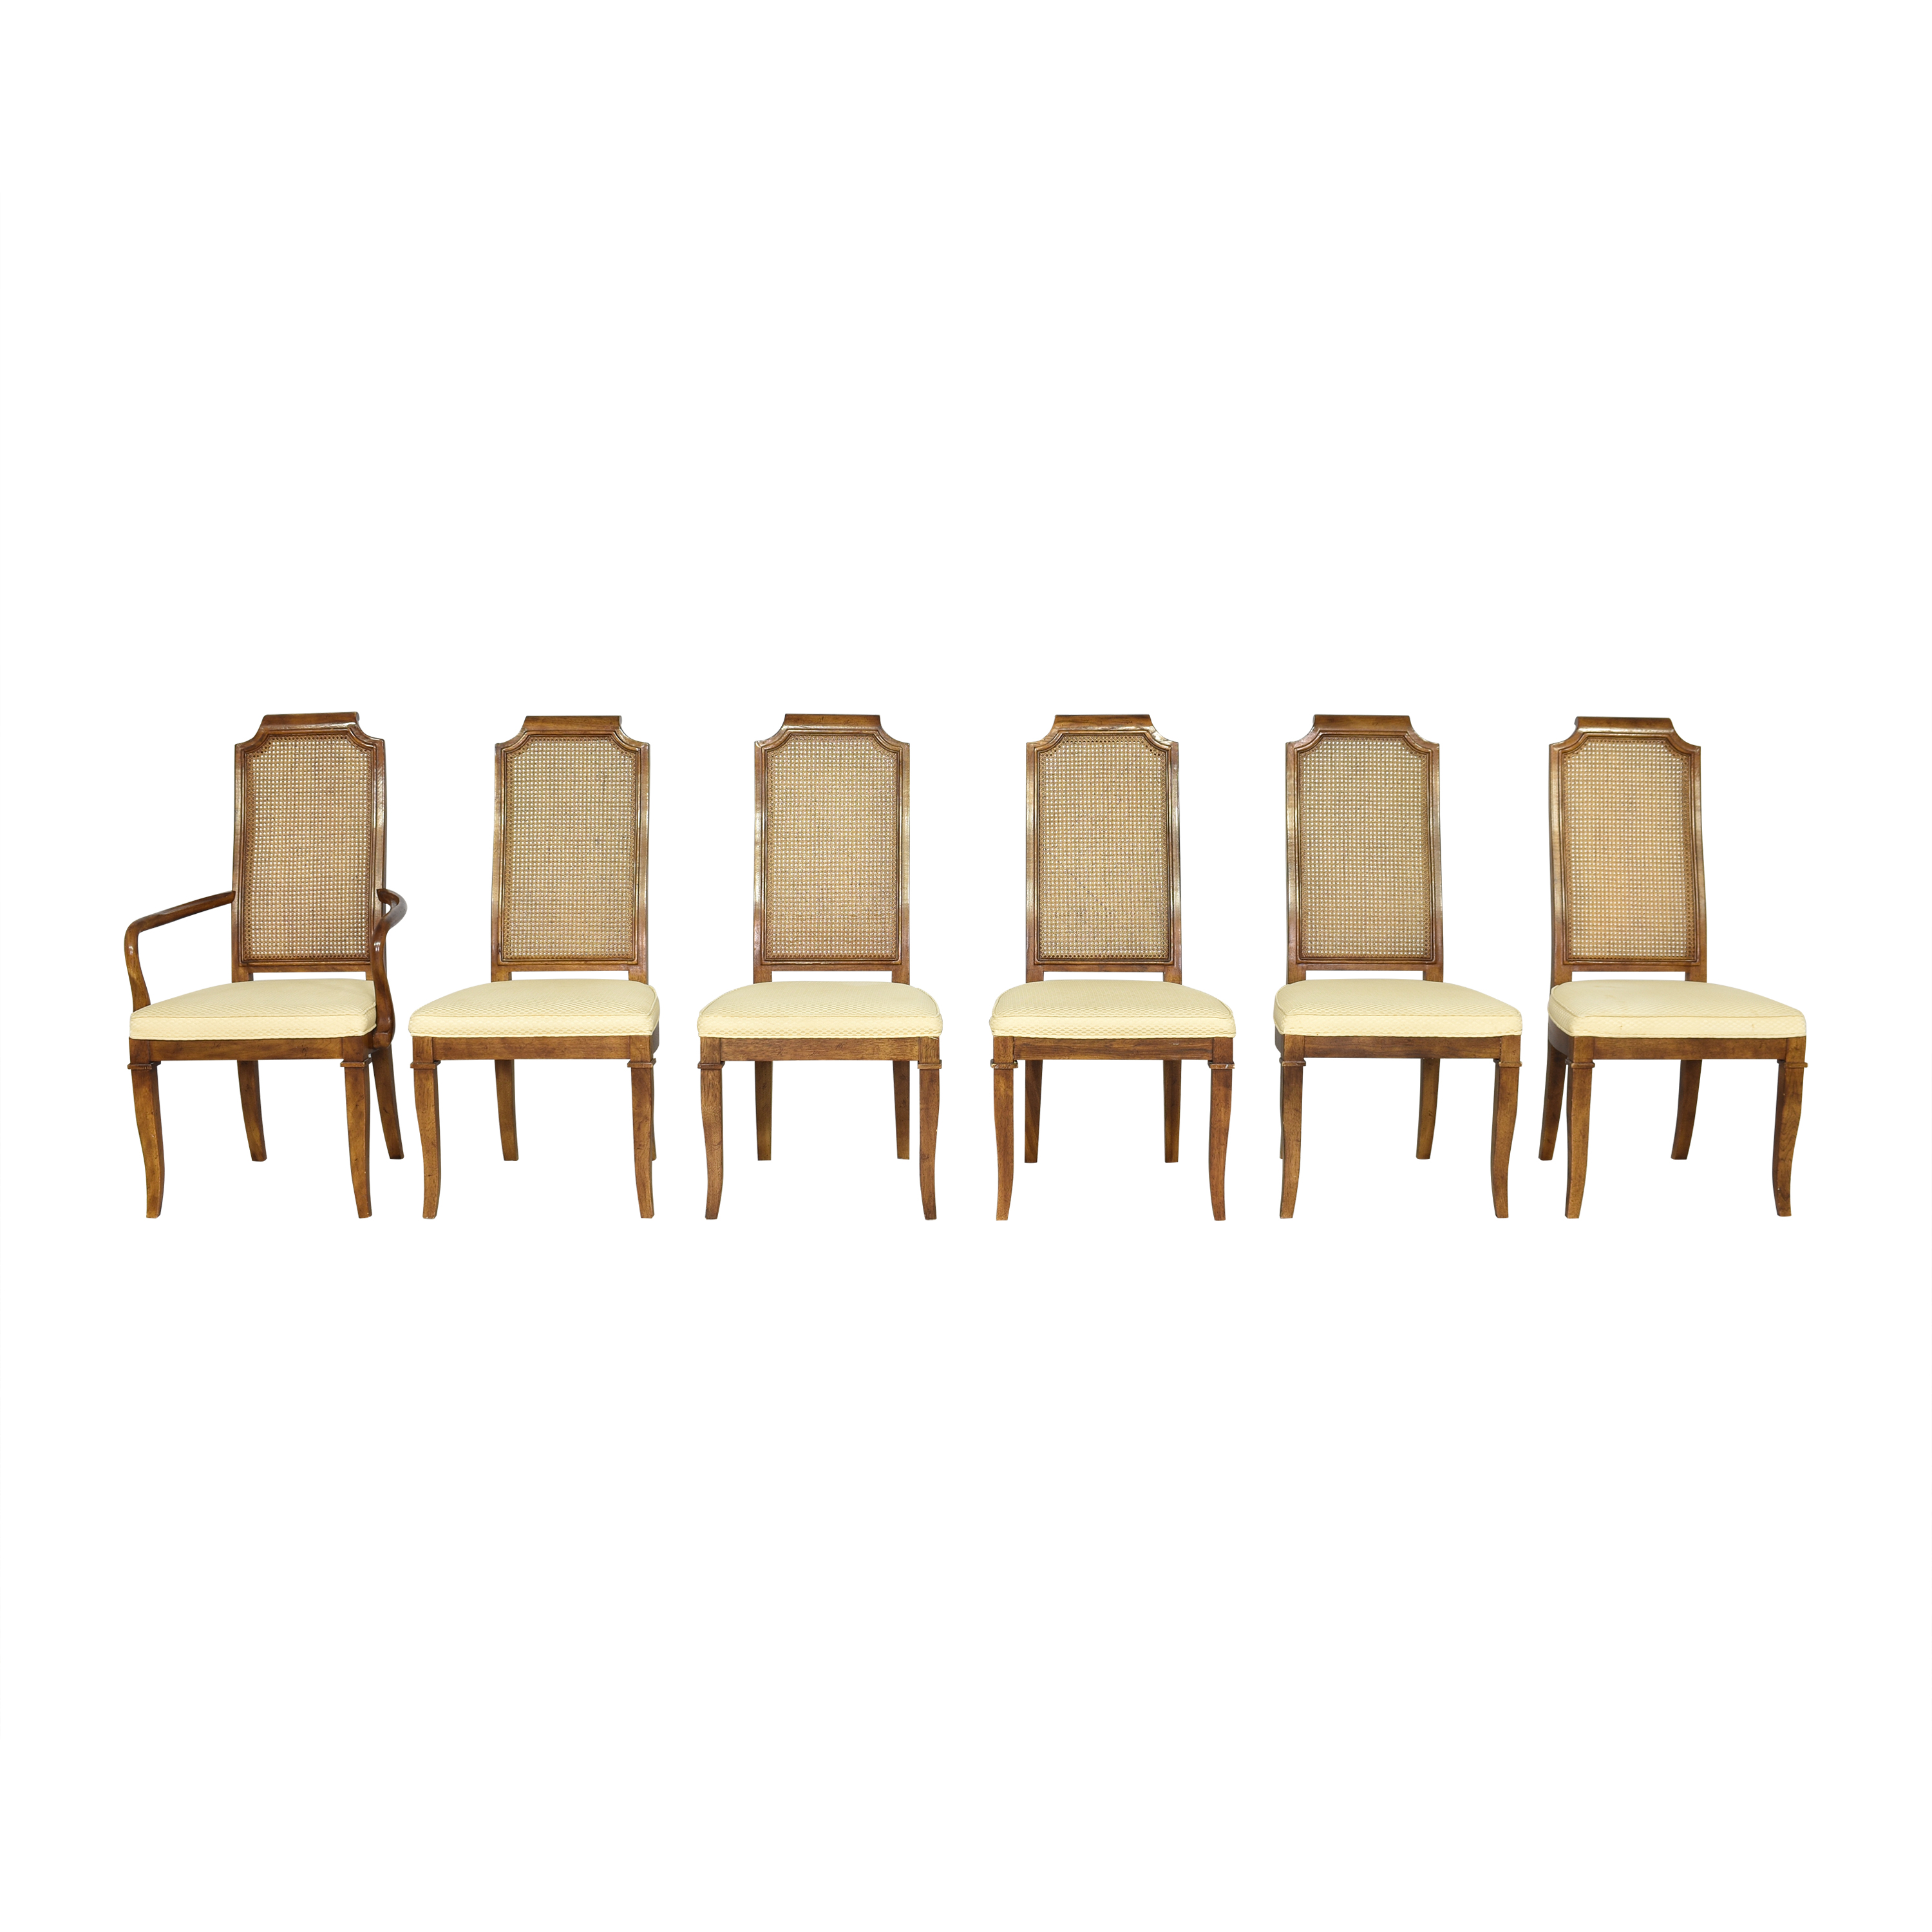 Drexel Heritage Drexel Heritage Cane Back Dining Chairs